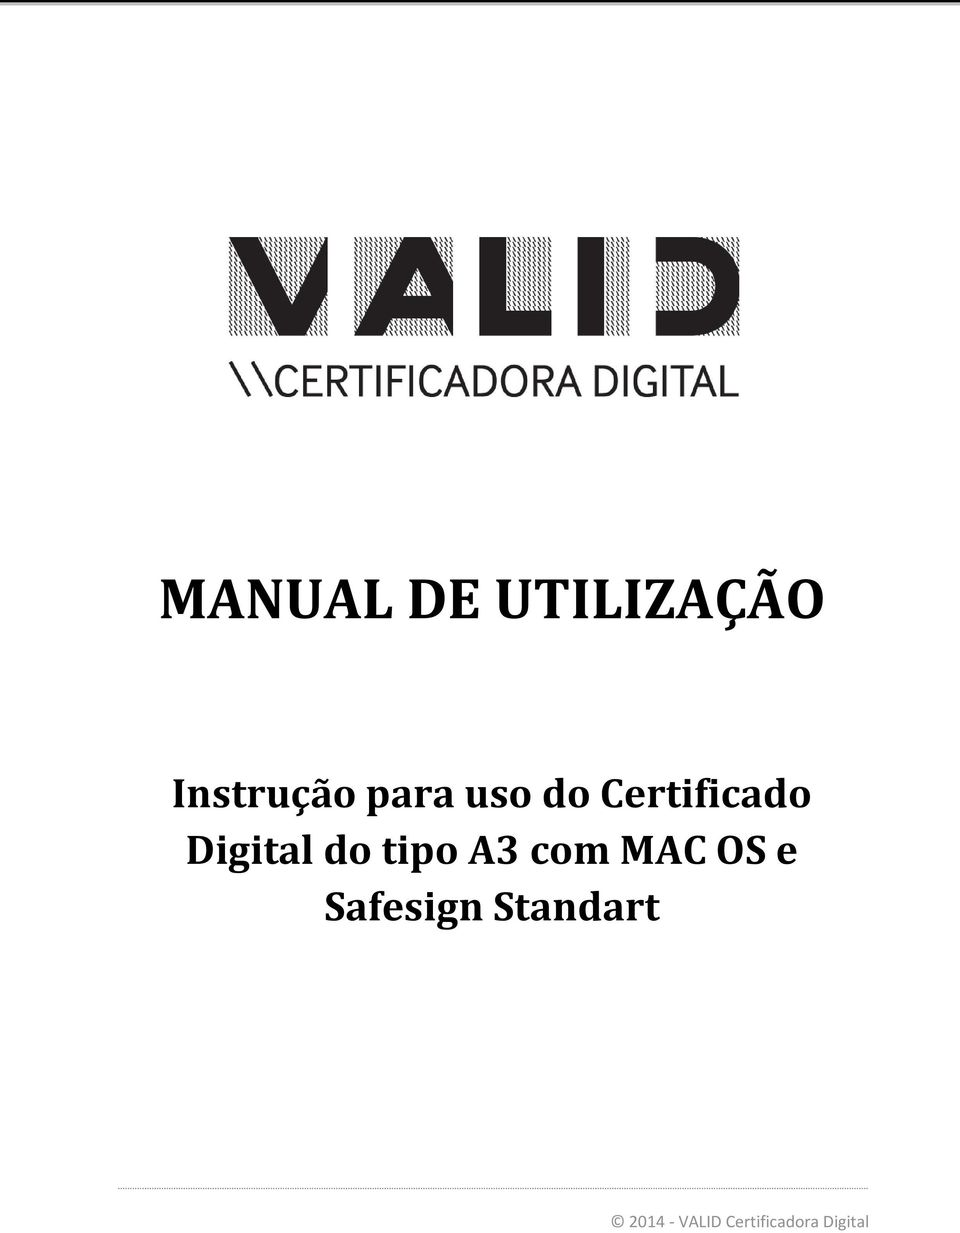 tipo A3 com MAC OS e Safesign